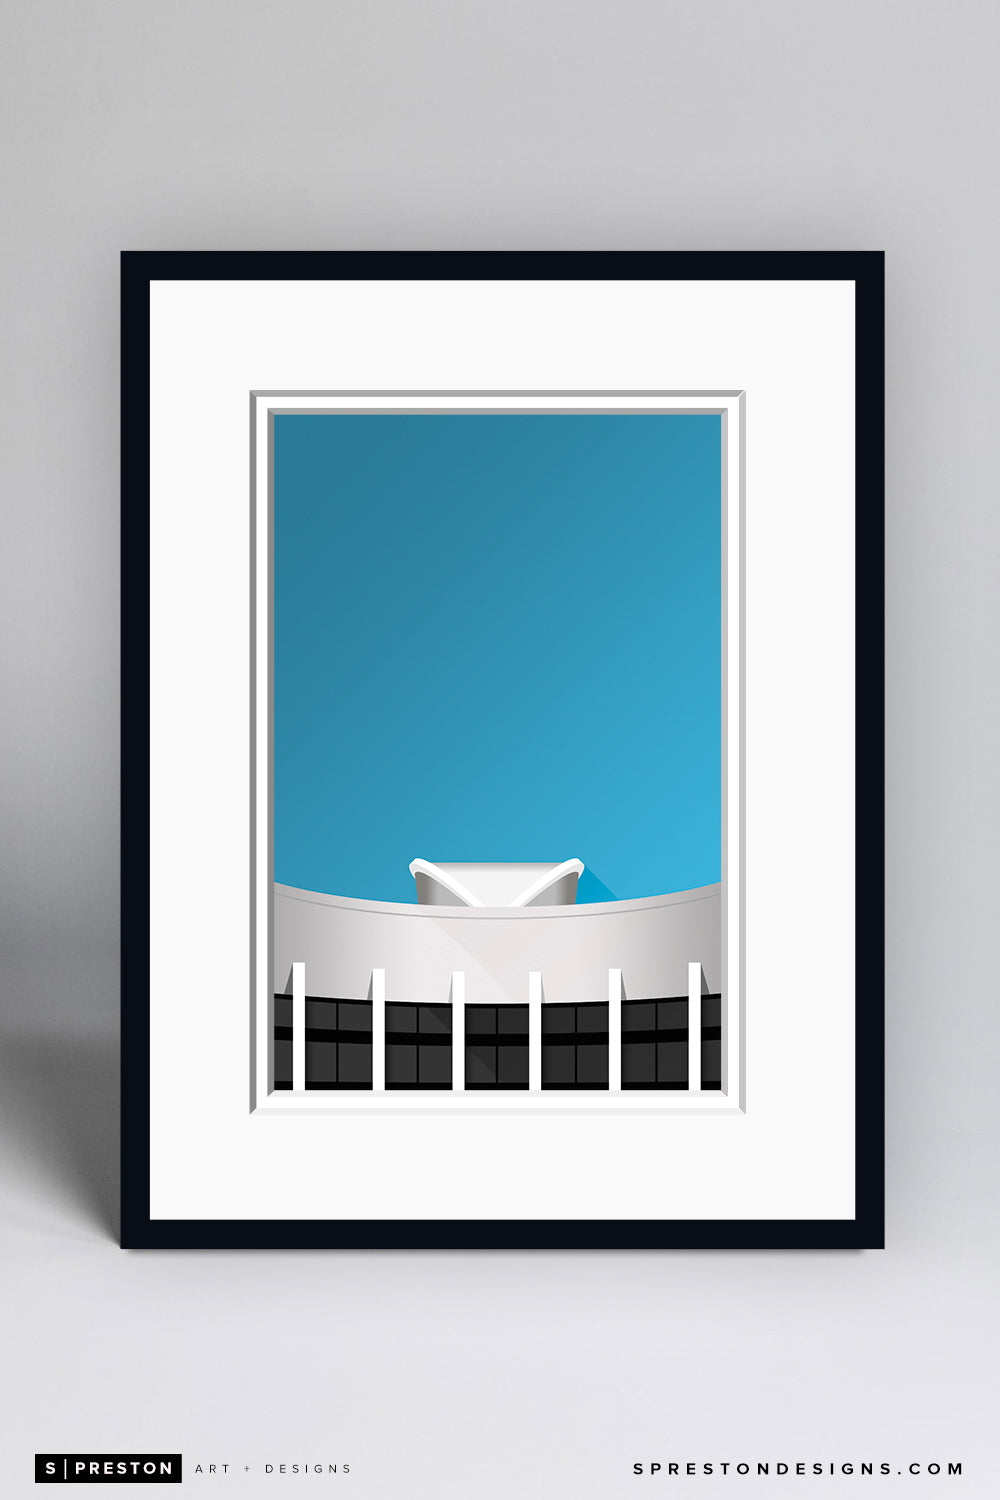 Minimalist Assembly Hall - Indiana University - S. Preston